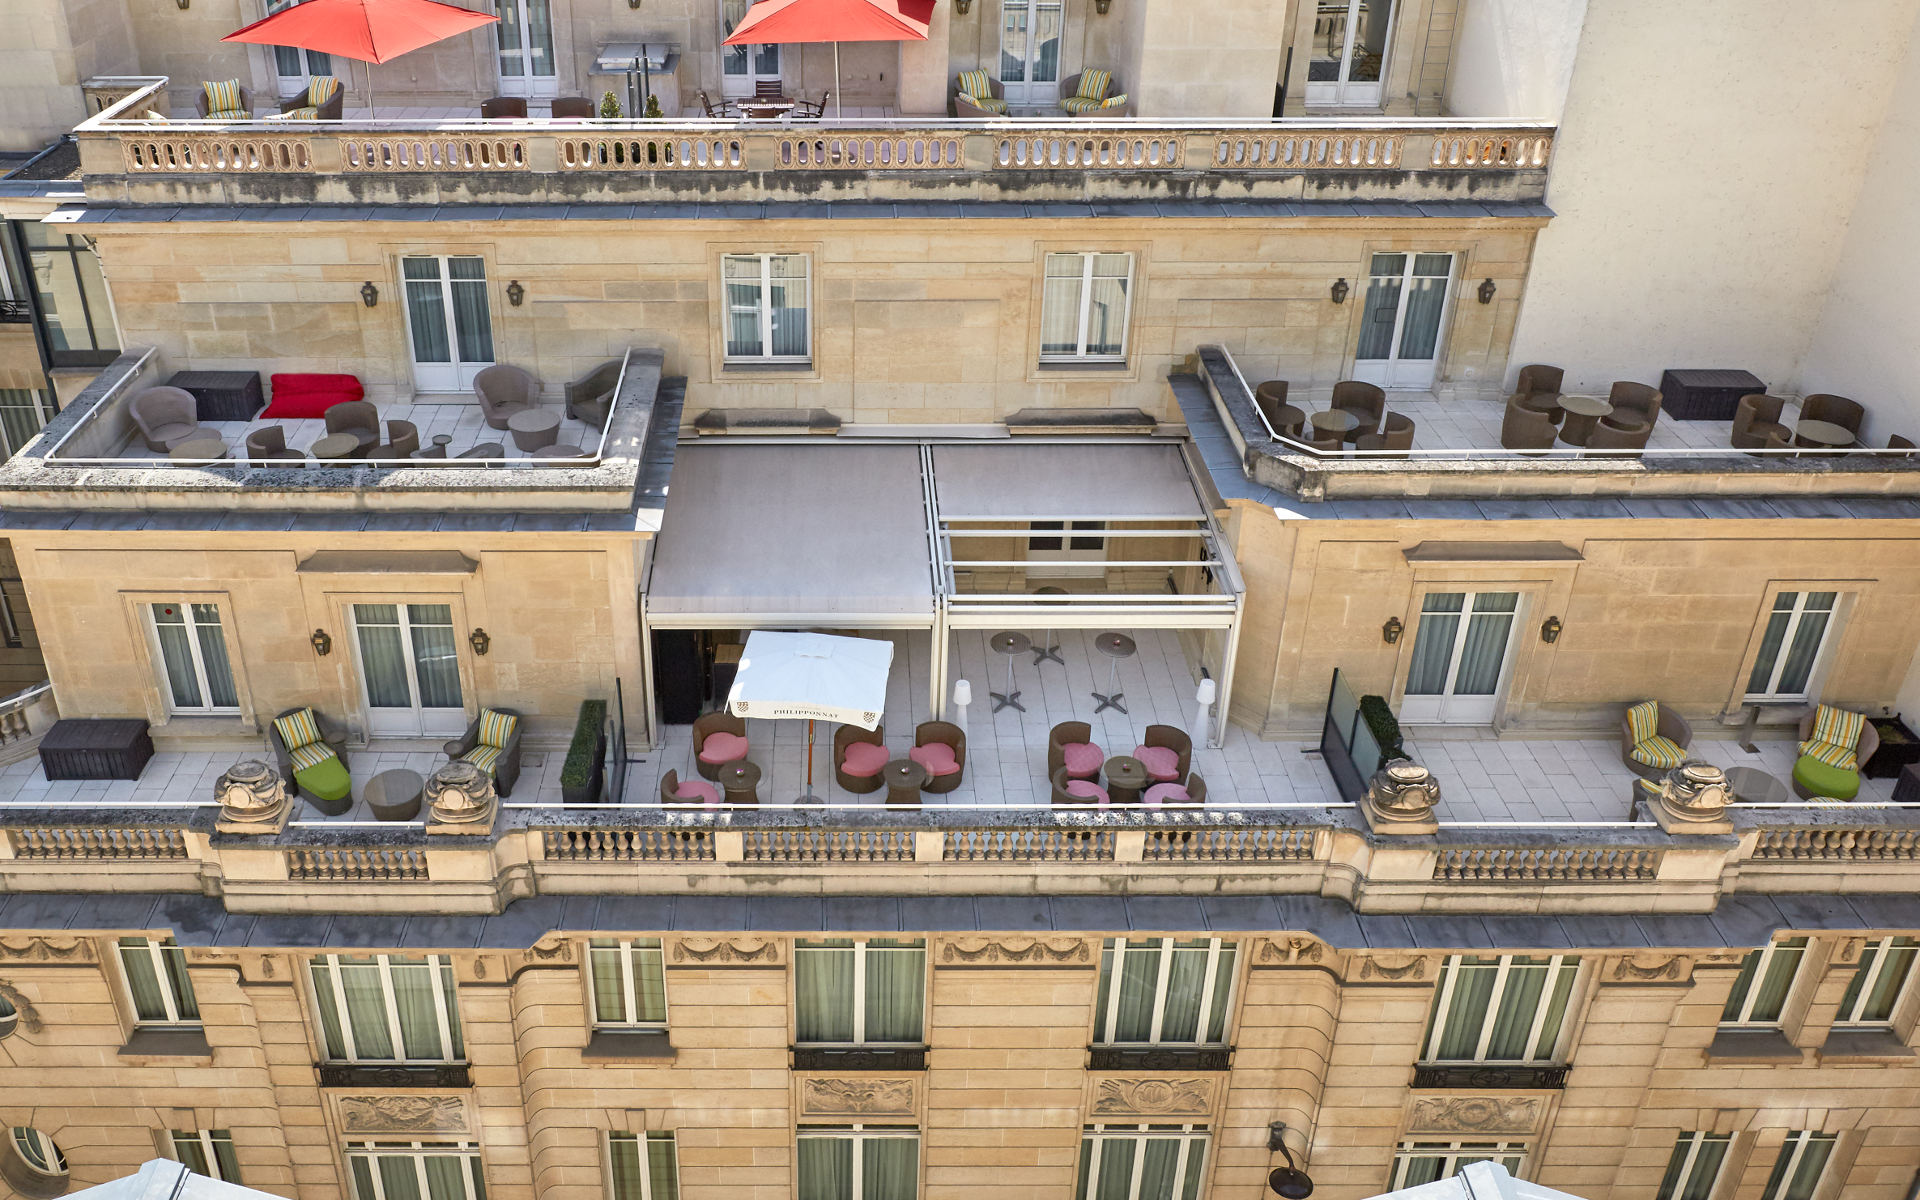 385/Hotel Majestic Appartements/Photos/Lhotel/Terrasse/Terraces_1__Majestic_Hotel-Spa.jpg